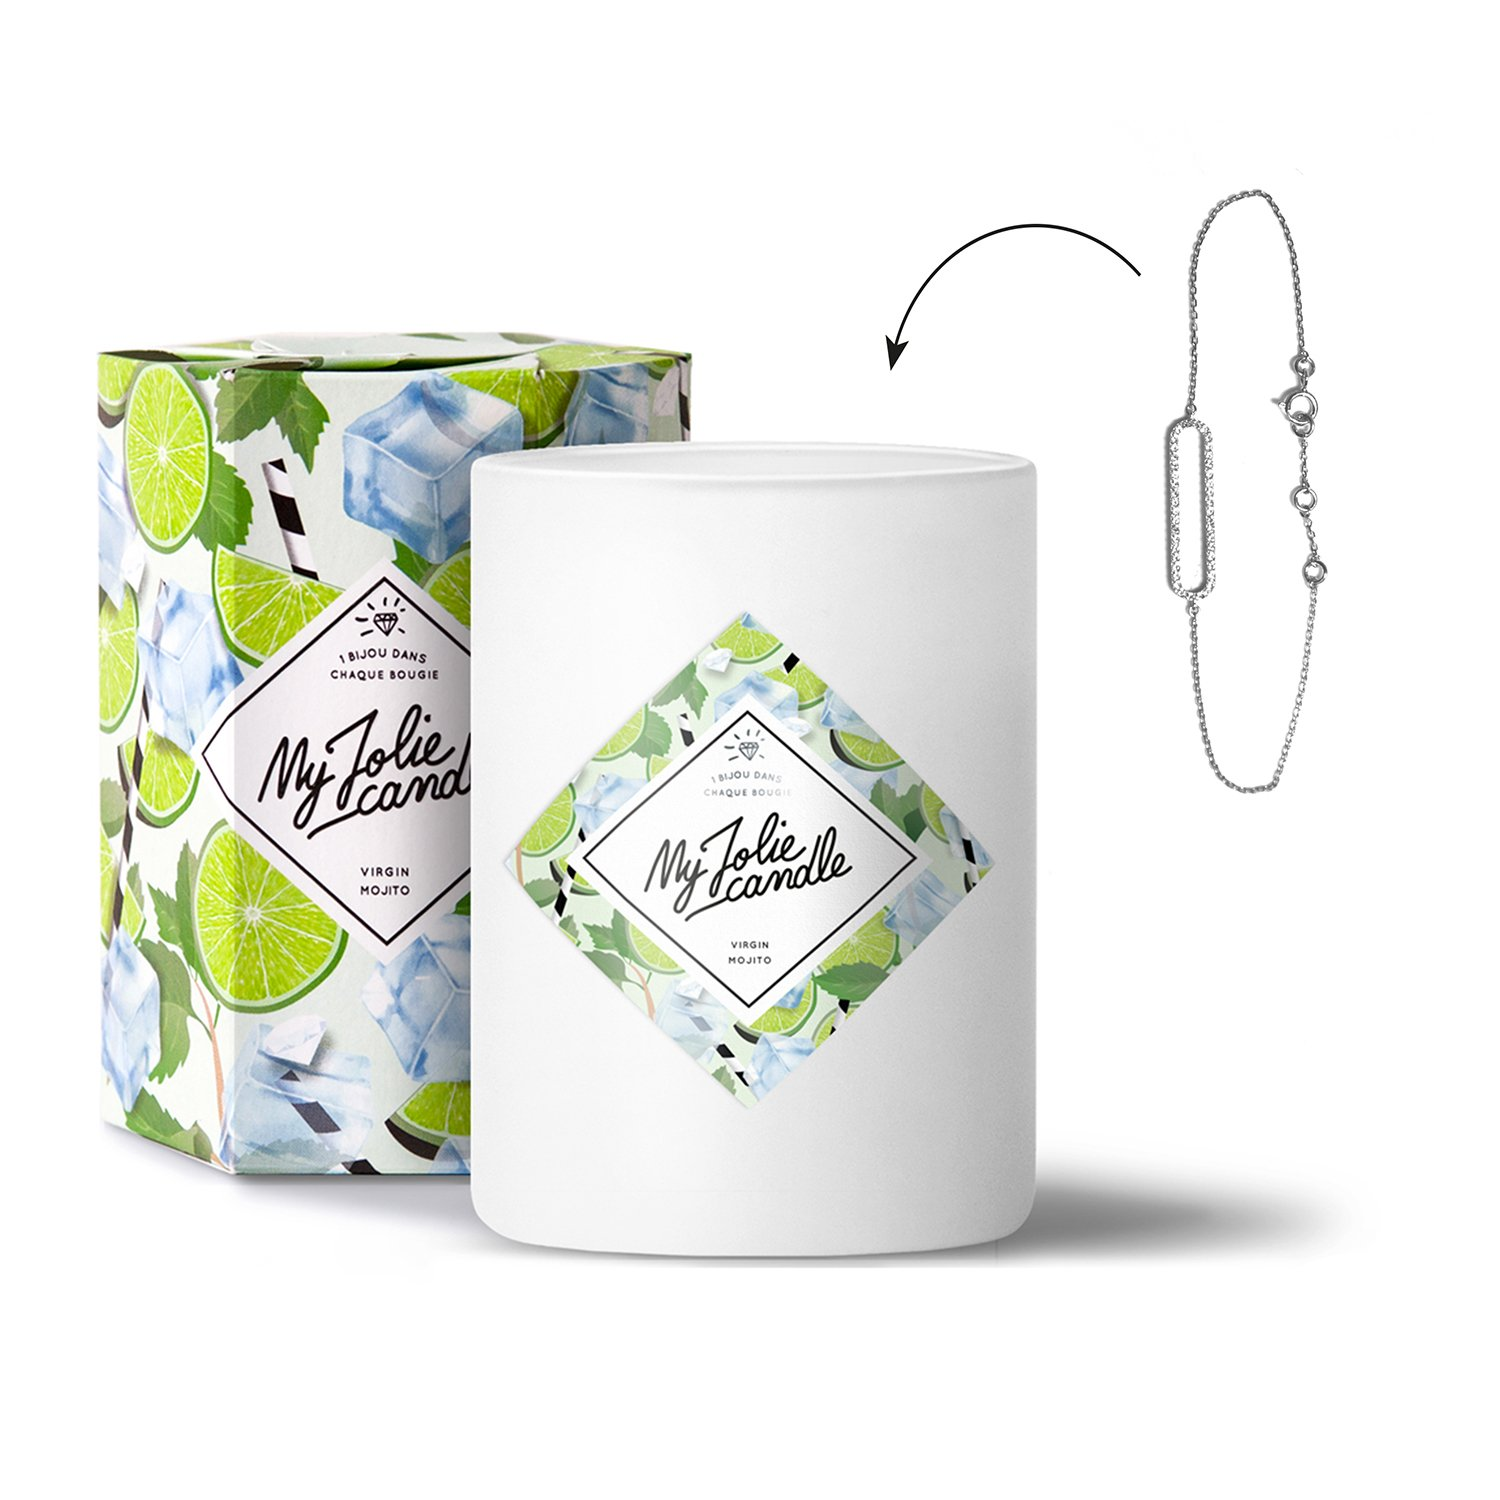 My Jolie candle Bougie-Bijou Virgin Mojito - Bracelet